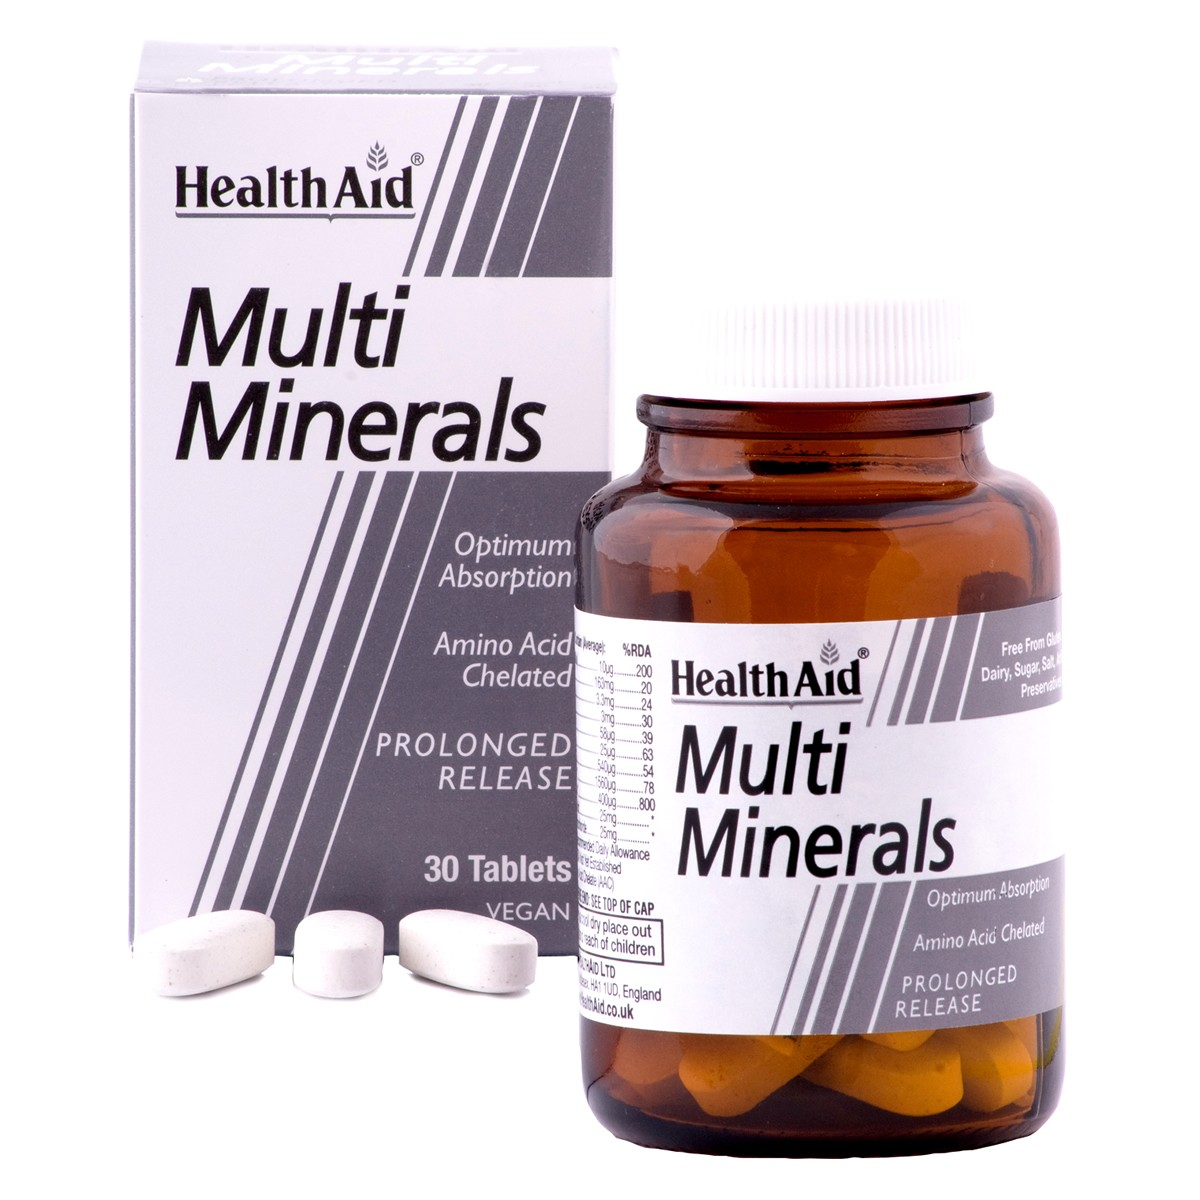 HealthAid Super Multiminerals - Prolonged Release